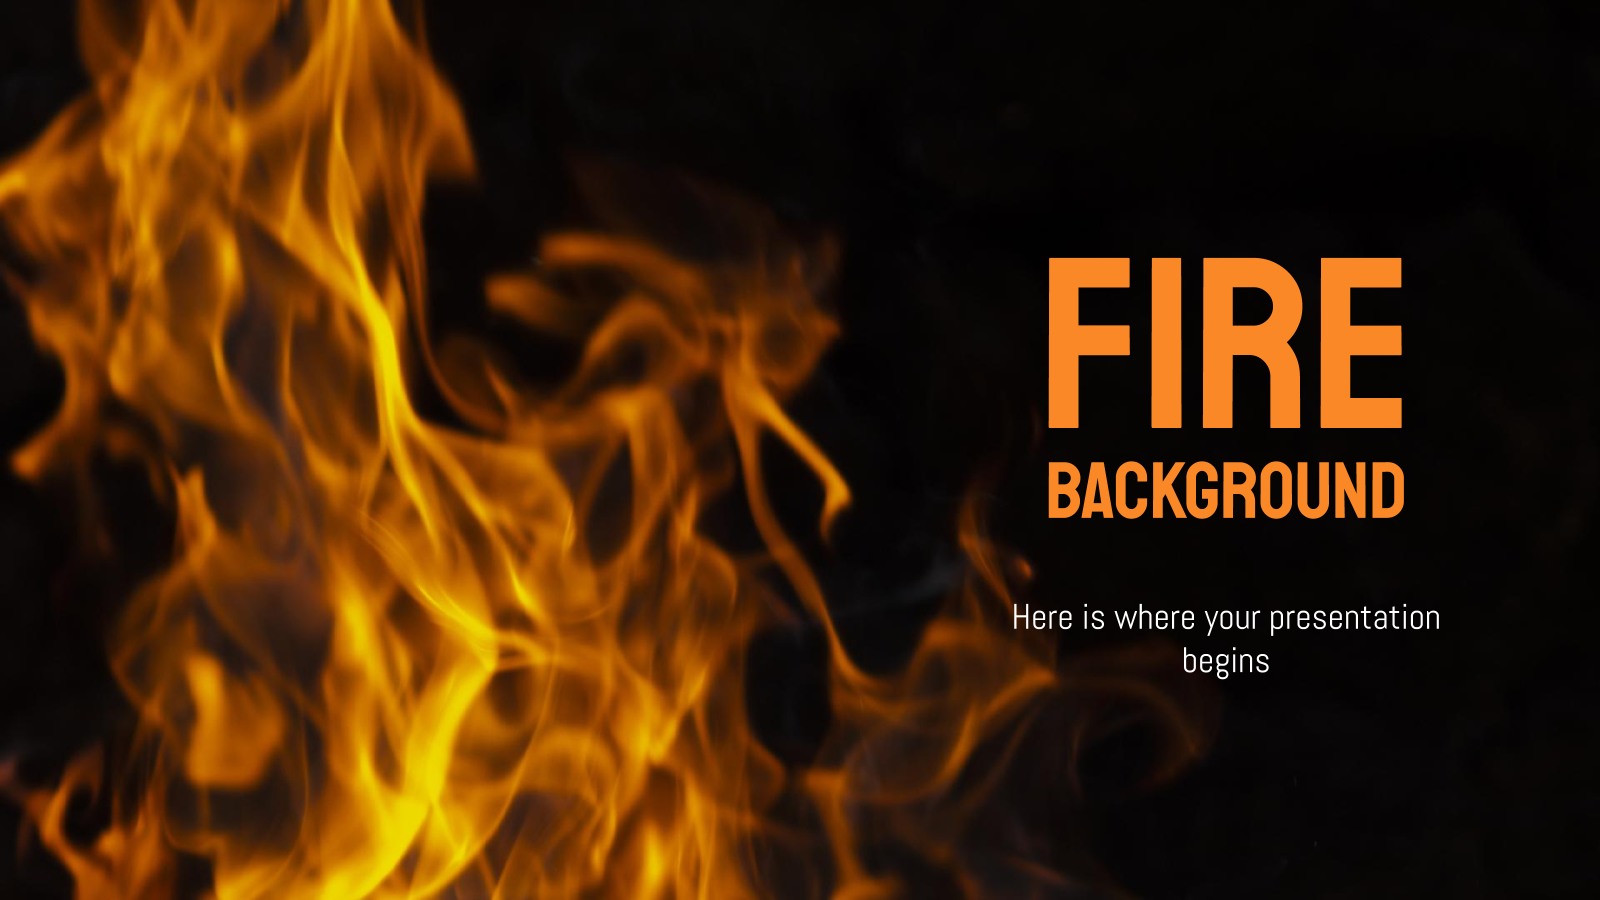 Fire Background presentation template